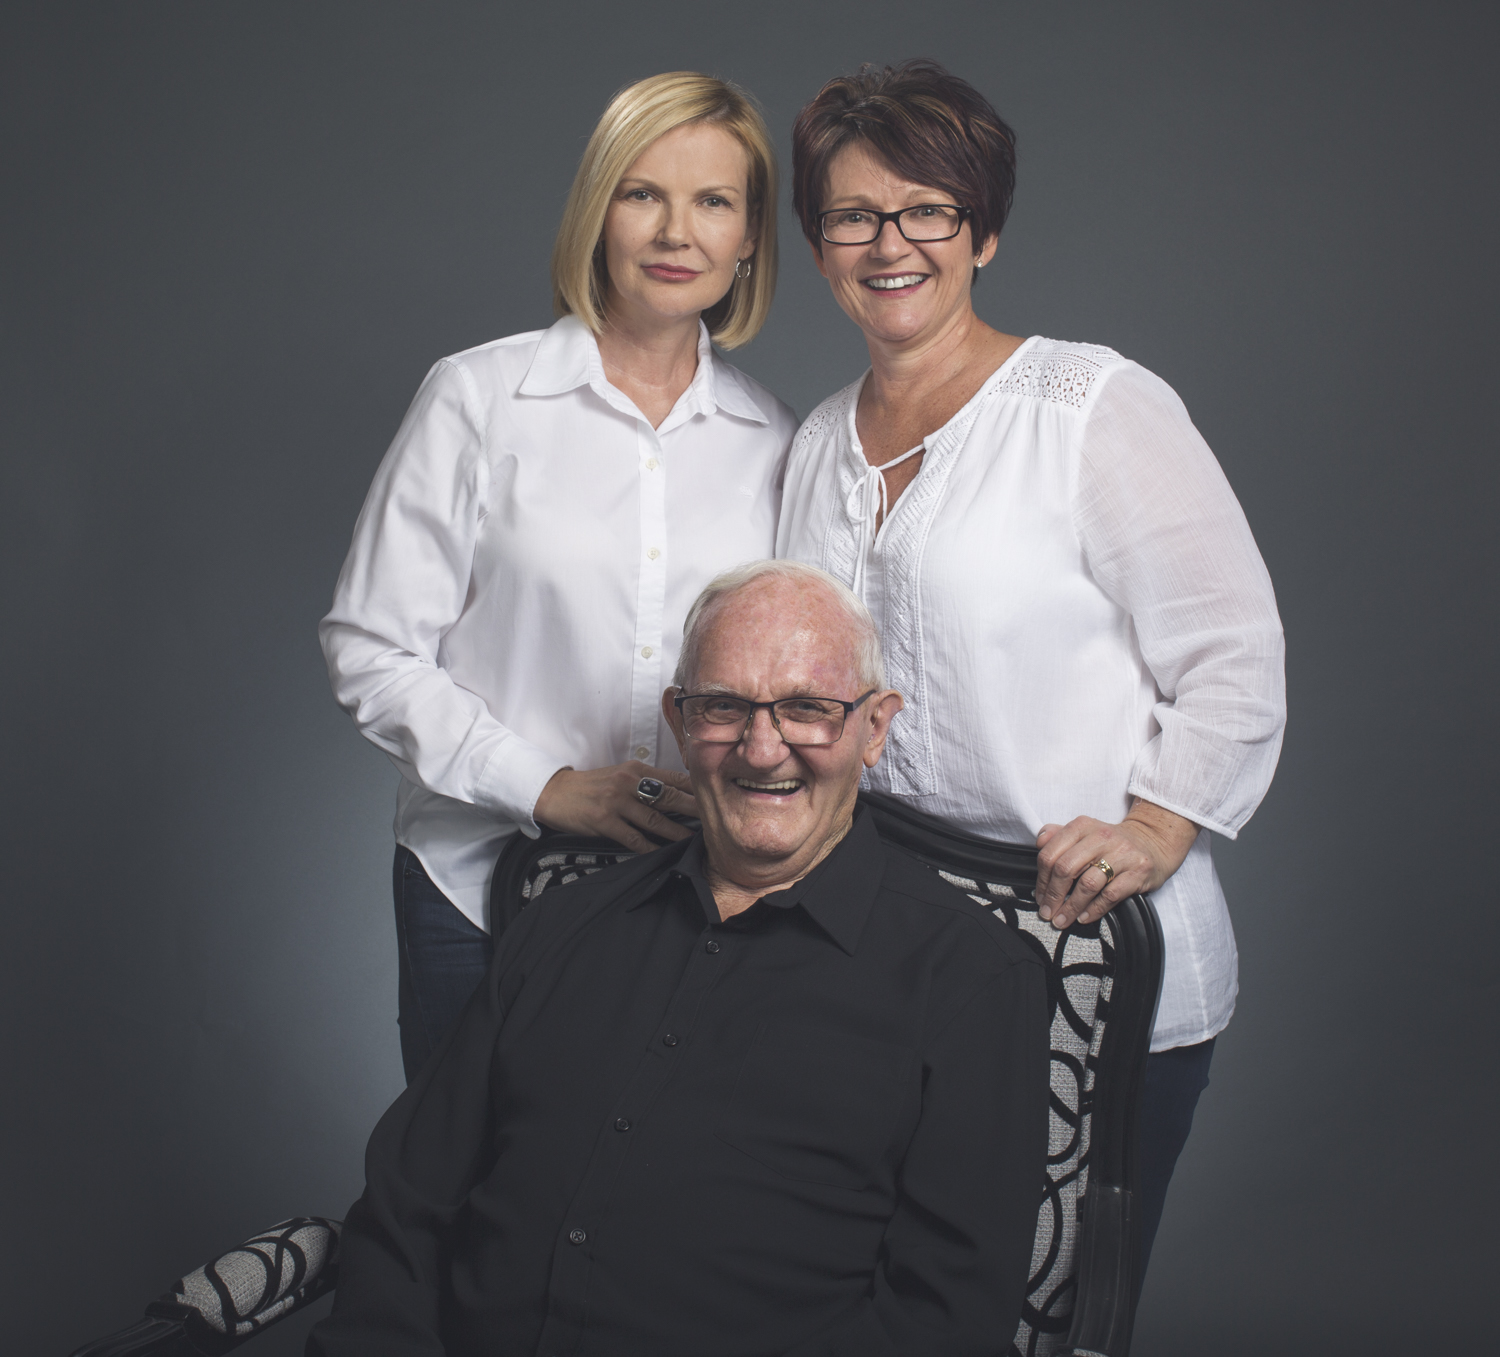 alison-and-family-201803426-2